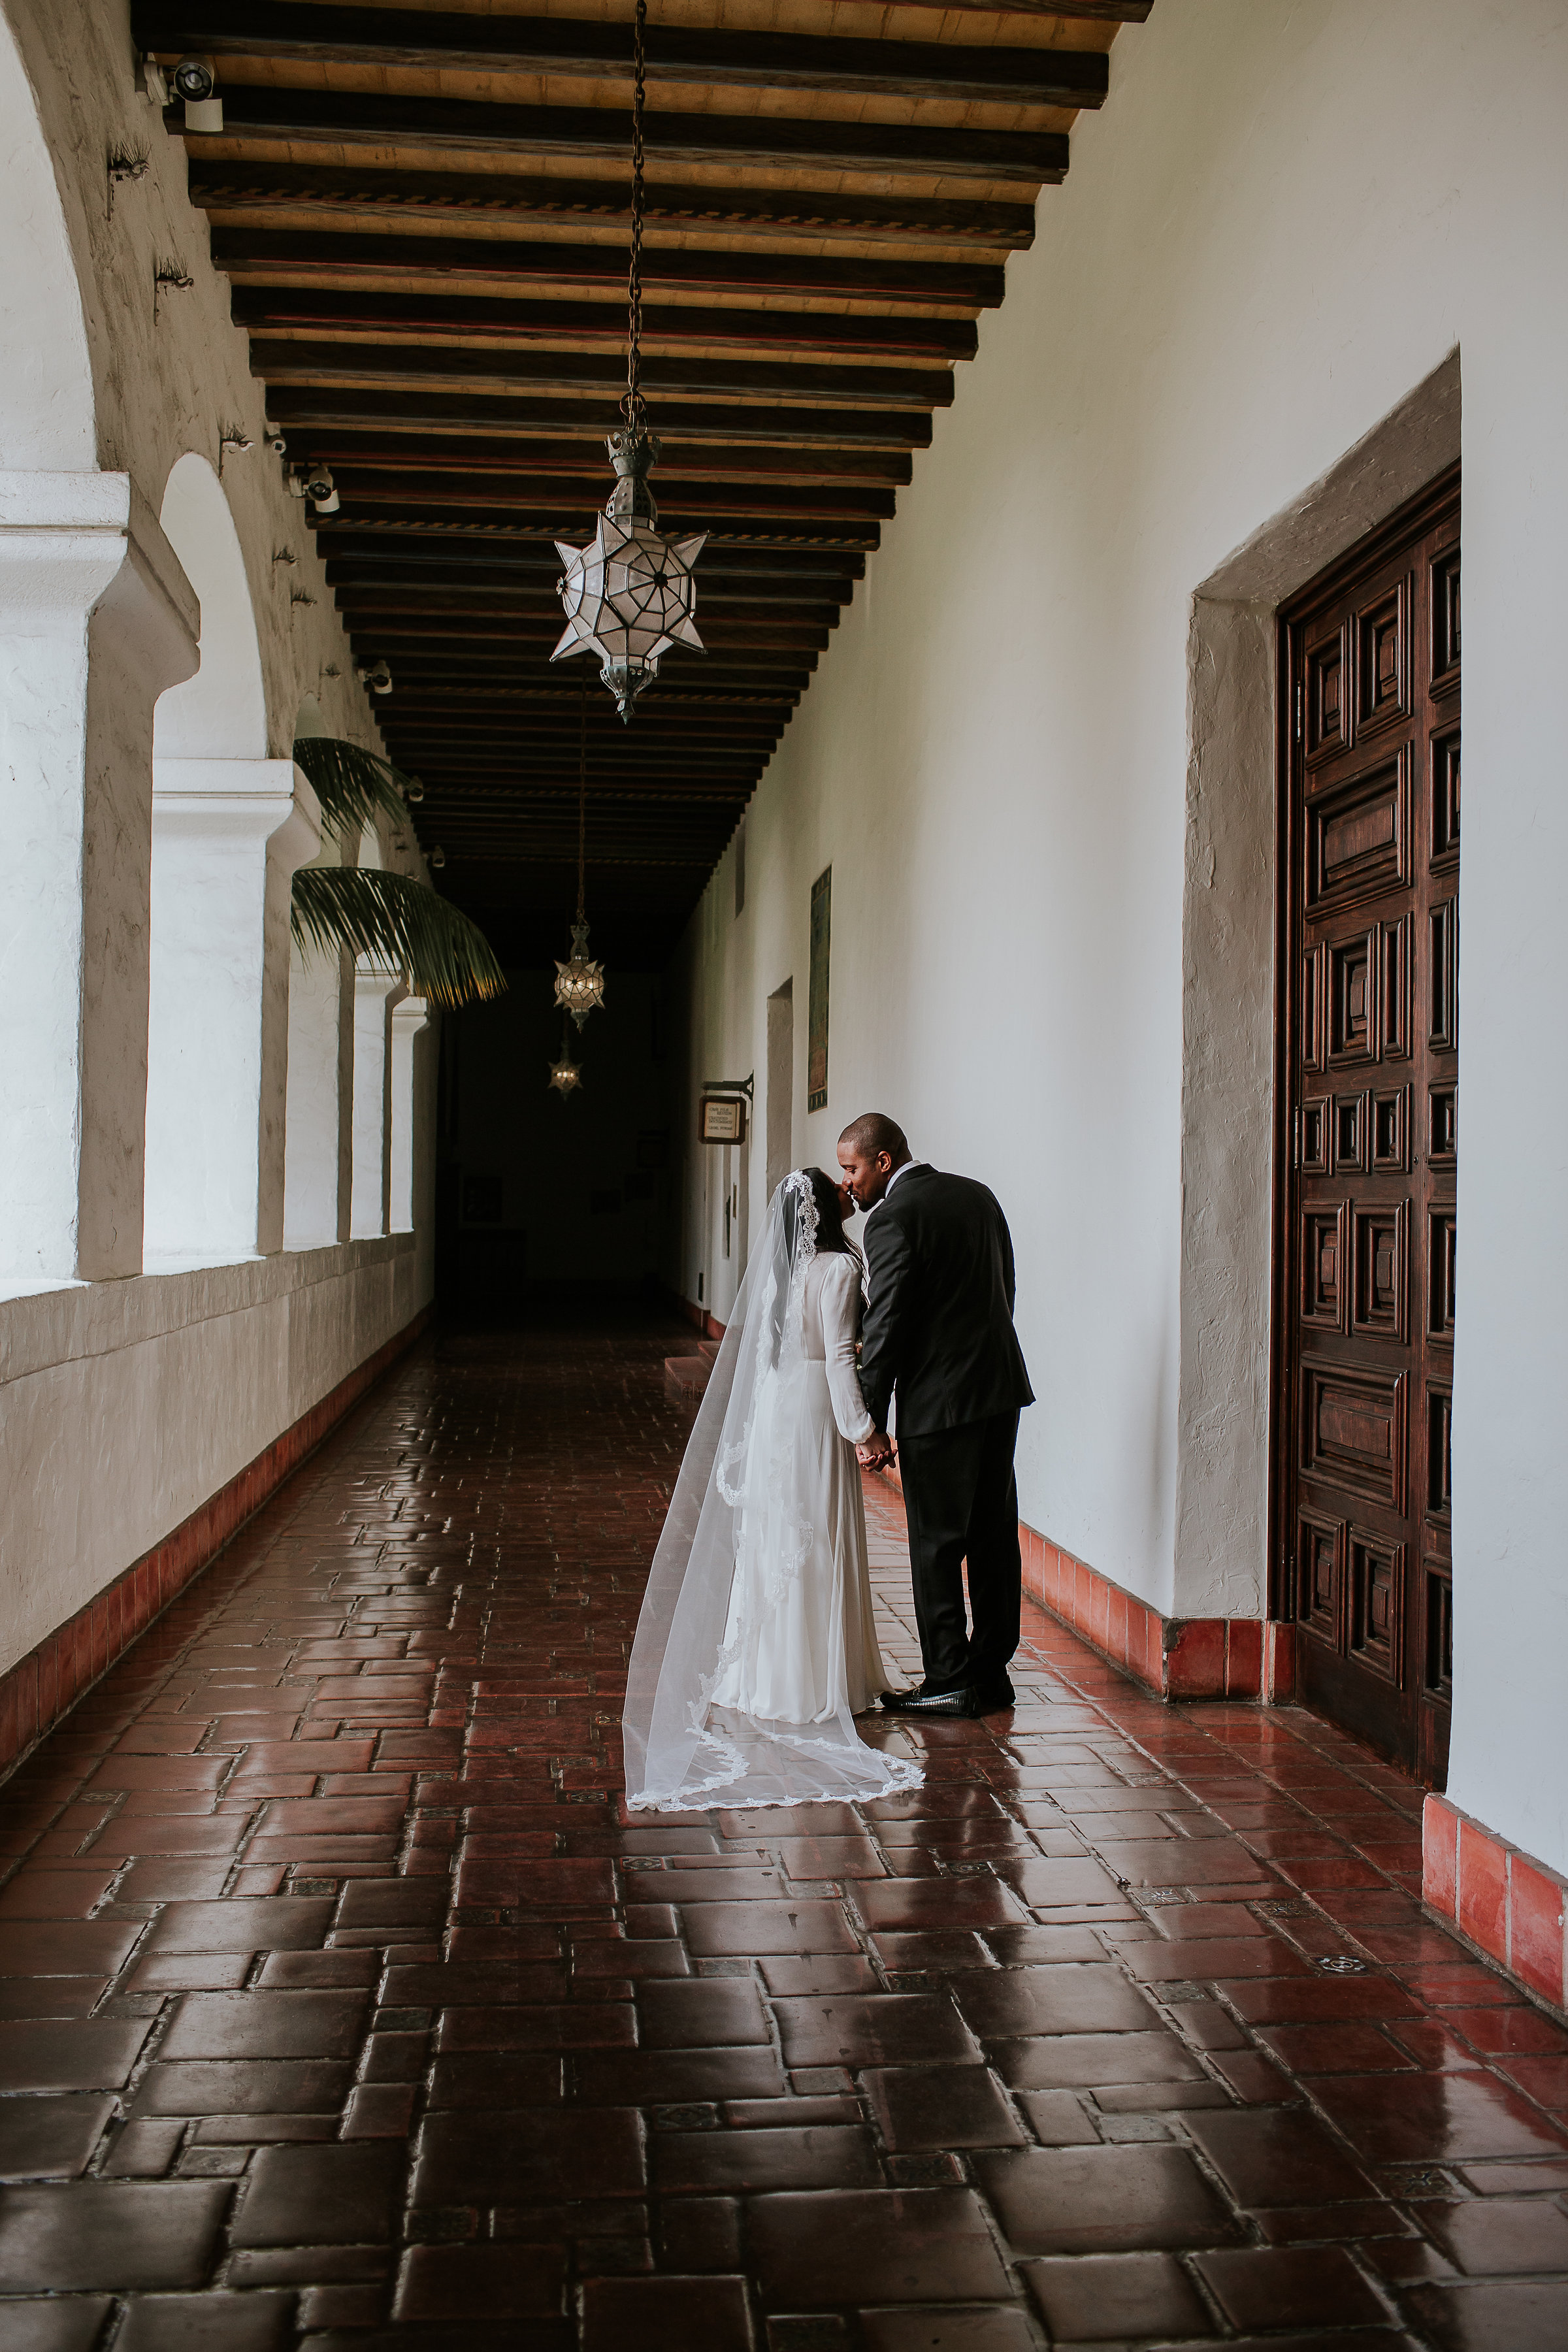 GabrielaandDeJuansantabarbaracourthouseweddingstellamaresweddingelopement-209.jpg